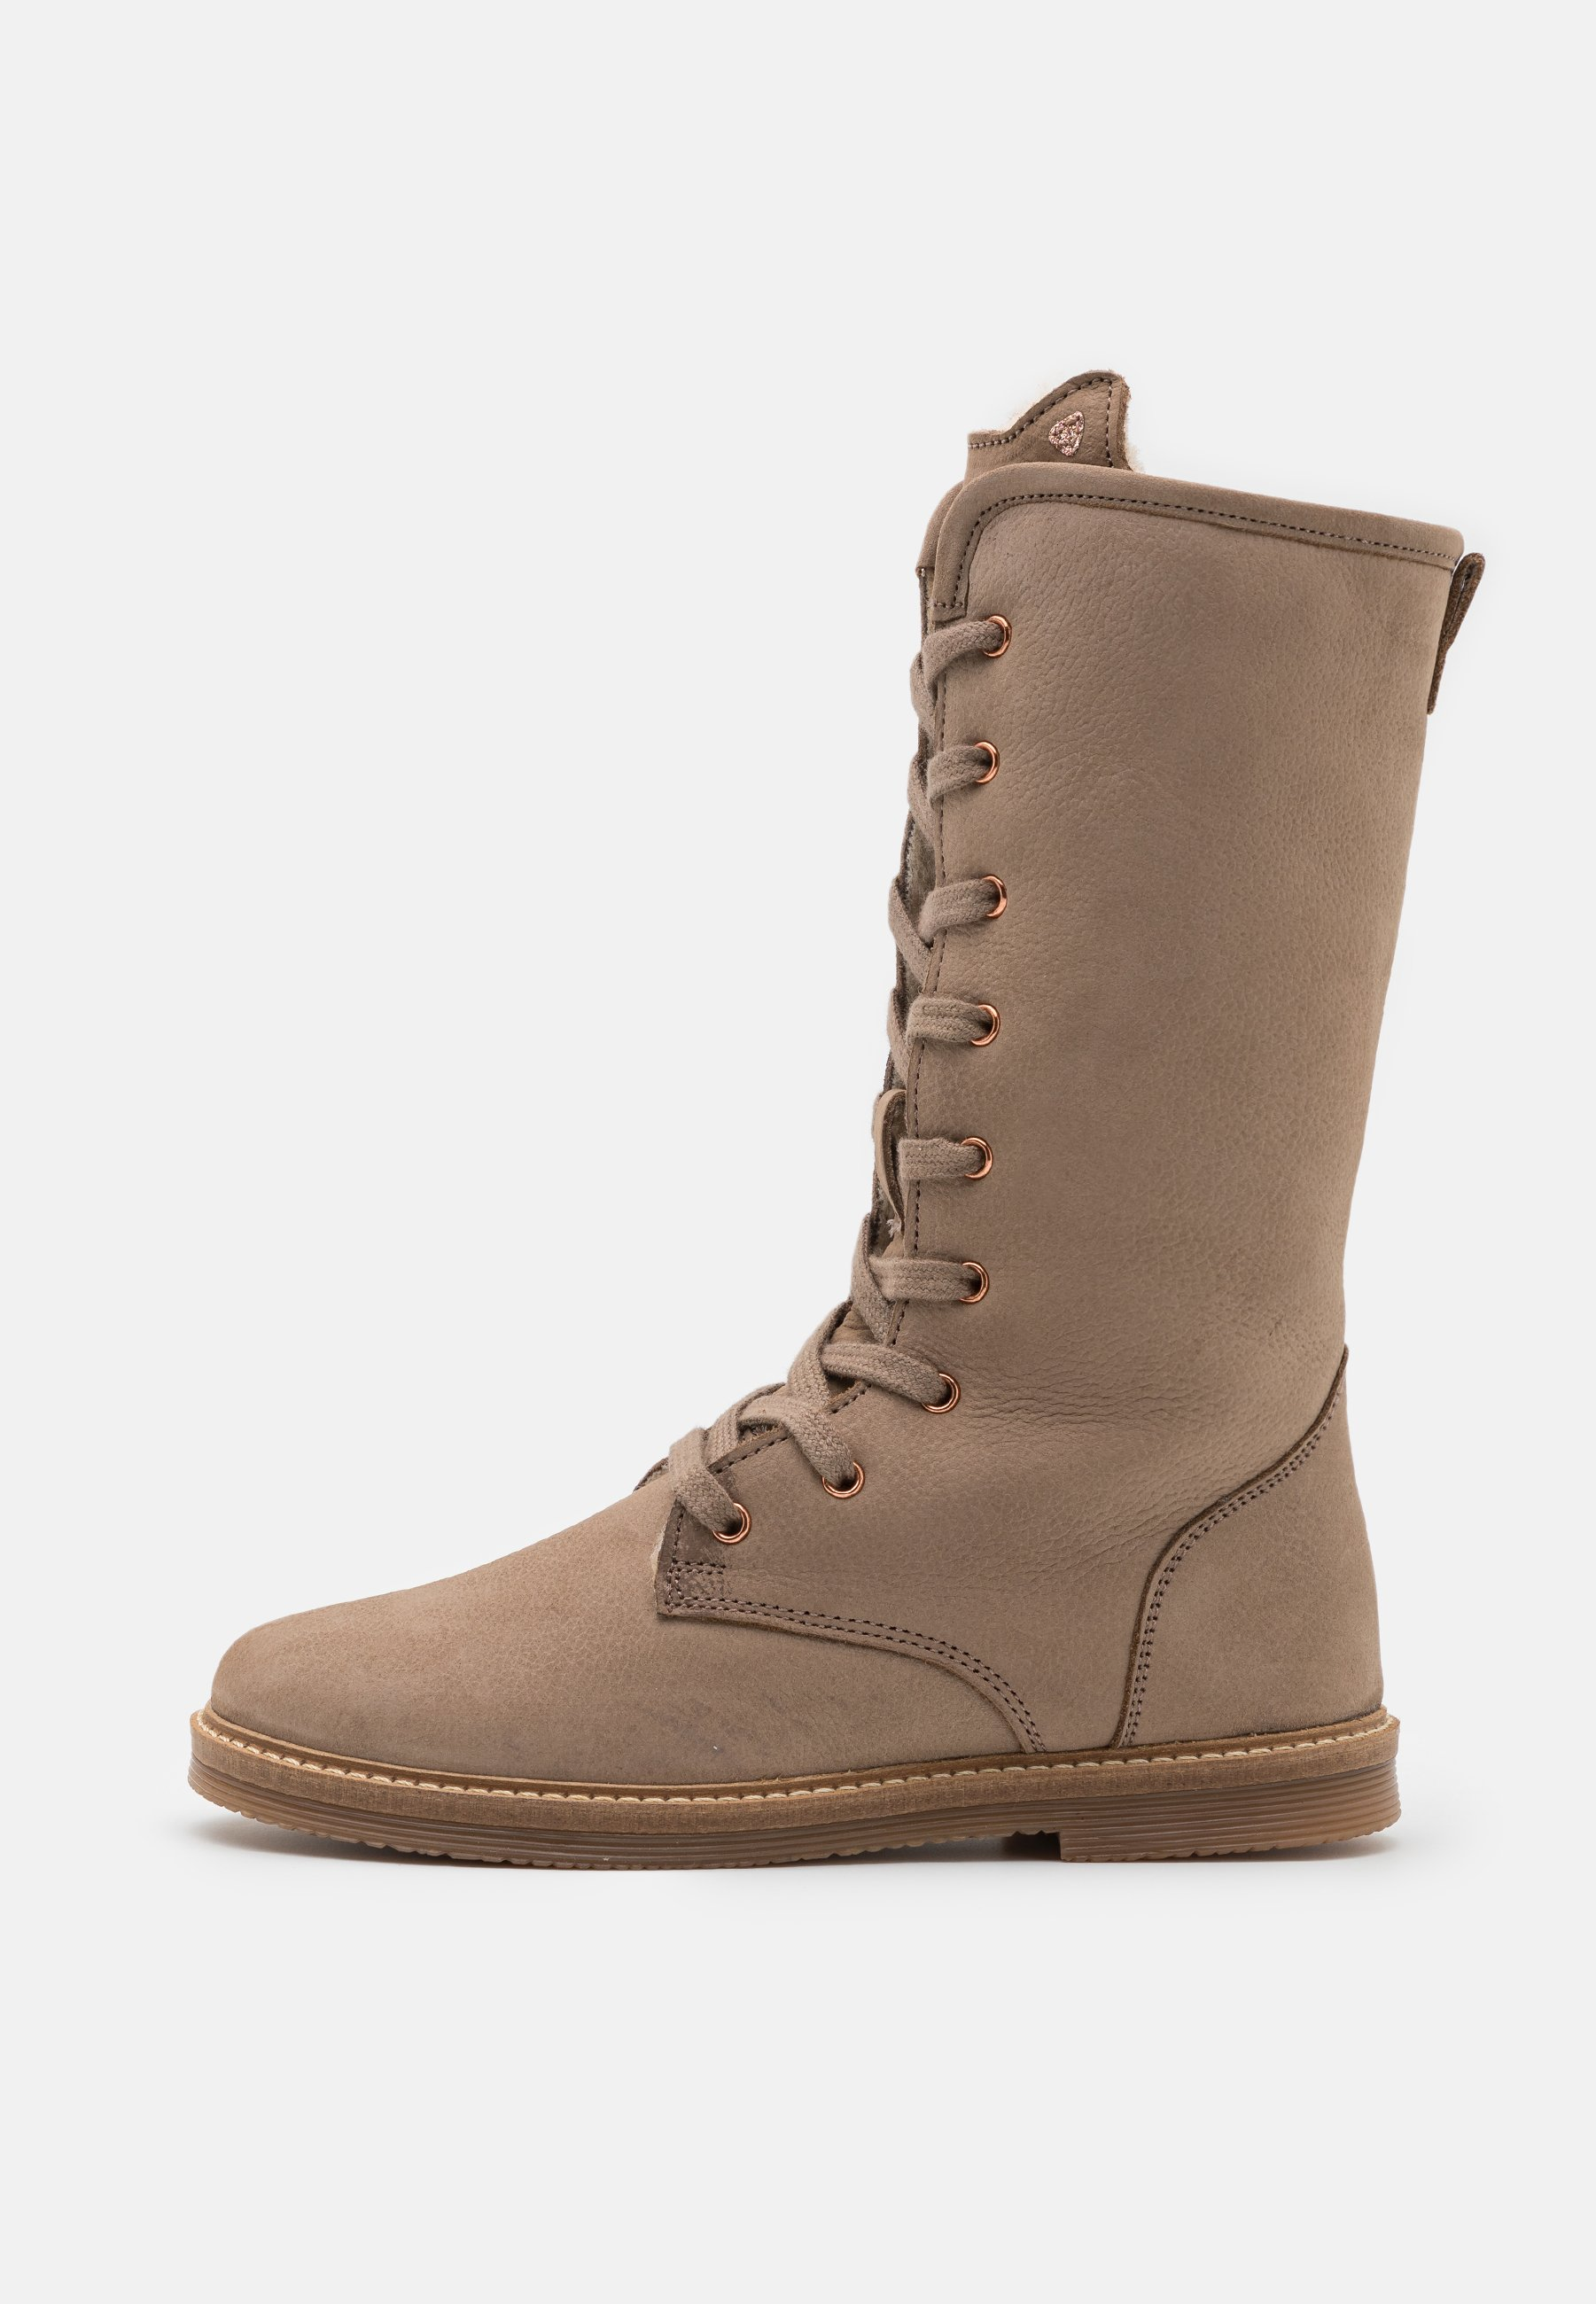 Kids LEATHER - Lace-up boots